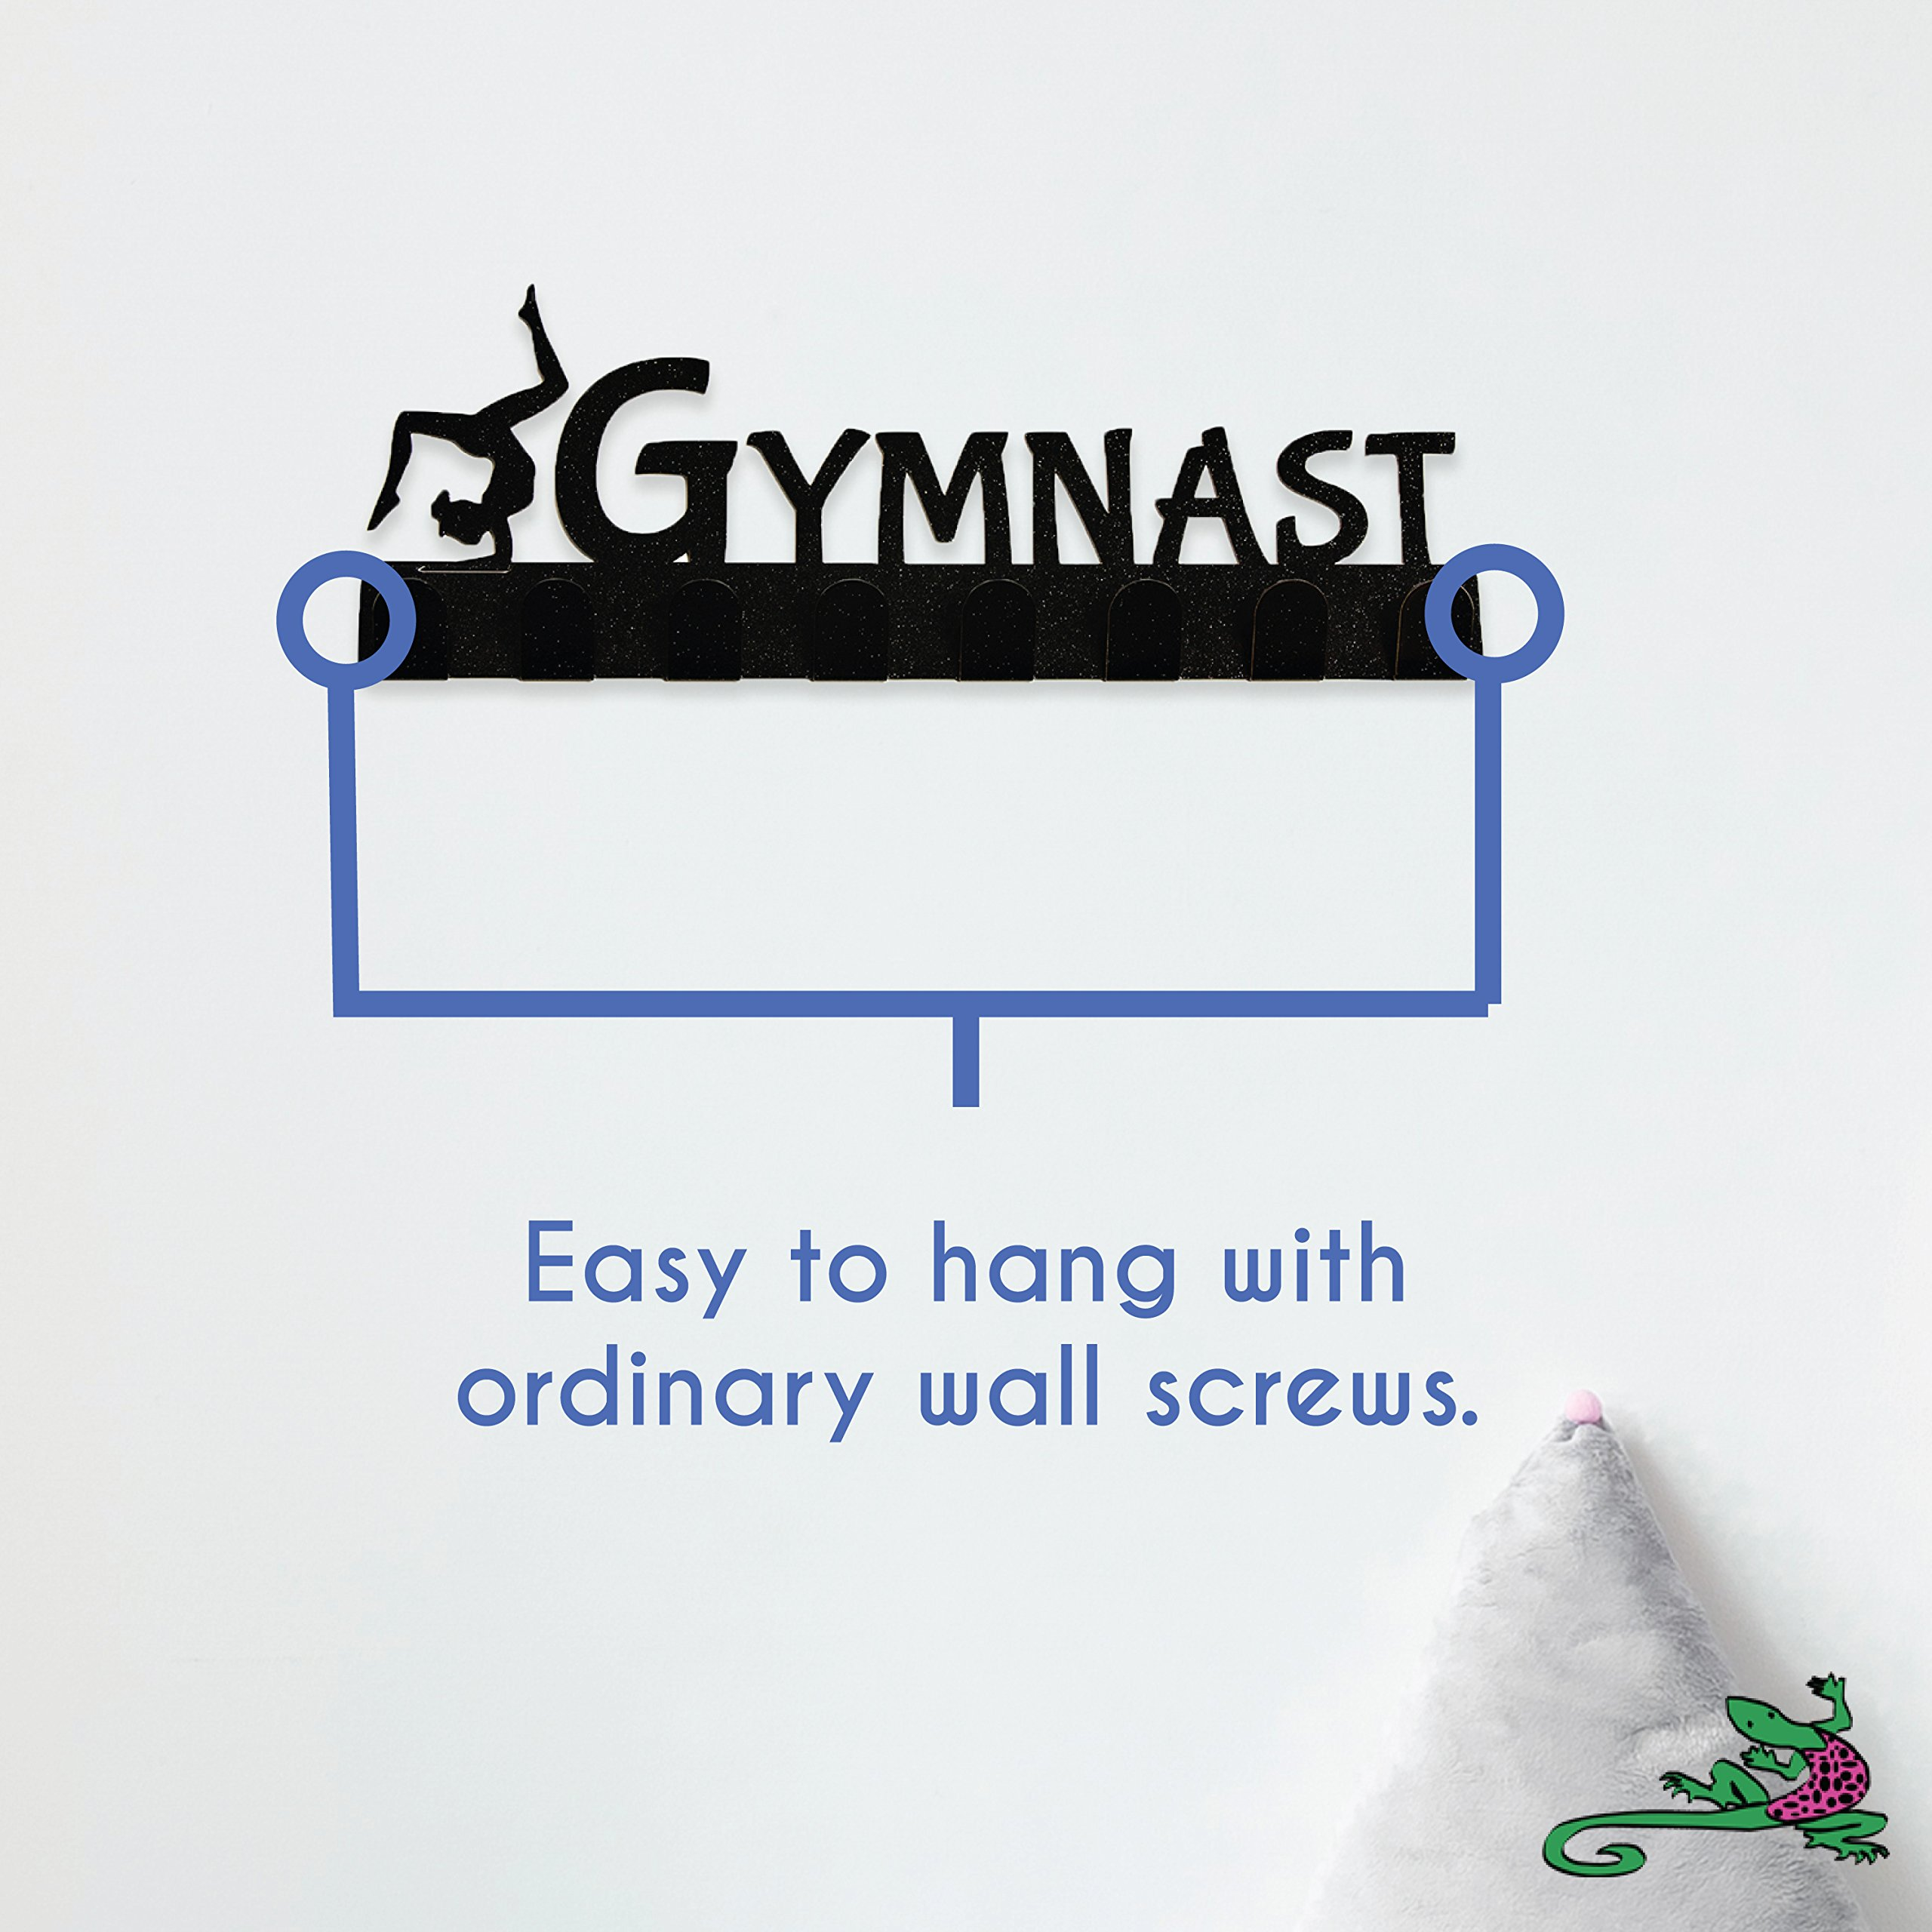 Lizatards Gymnastics Medal Display Rack & Holder with 8 Hooks in Black Sparkle Finish by Lizatards (Image #6)